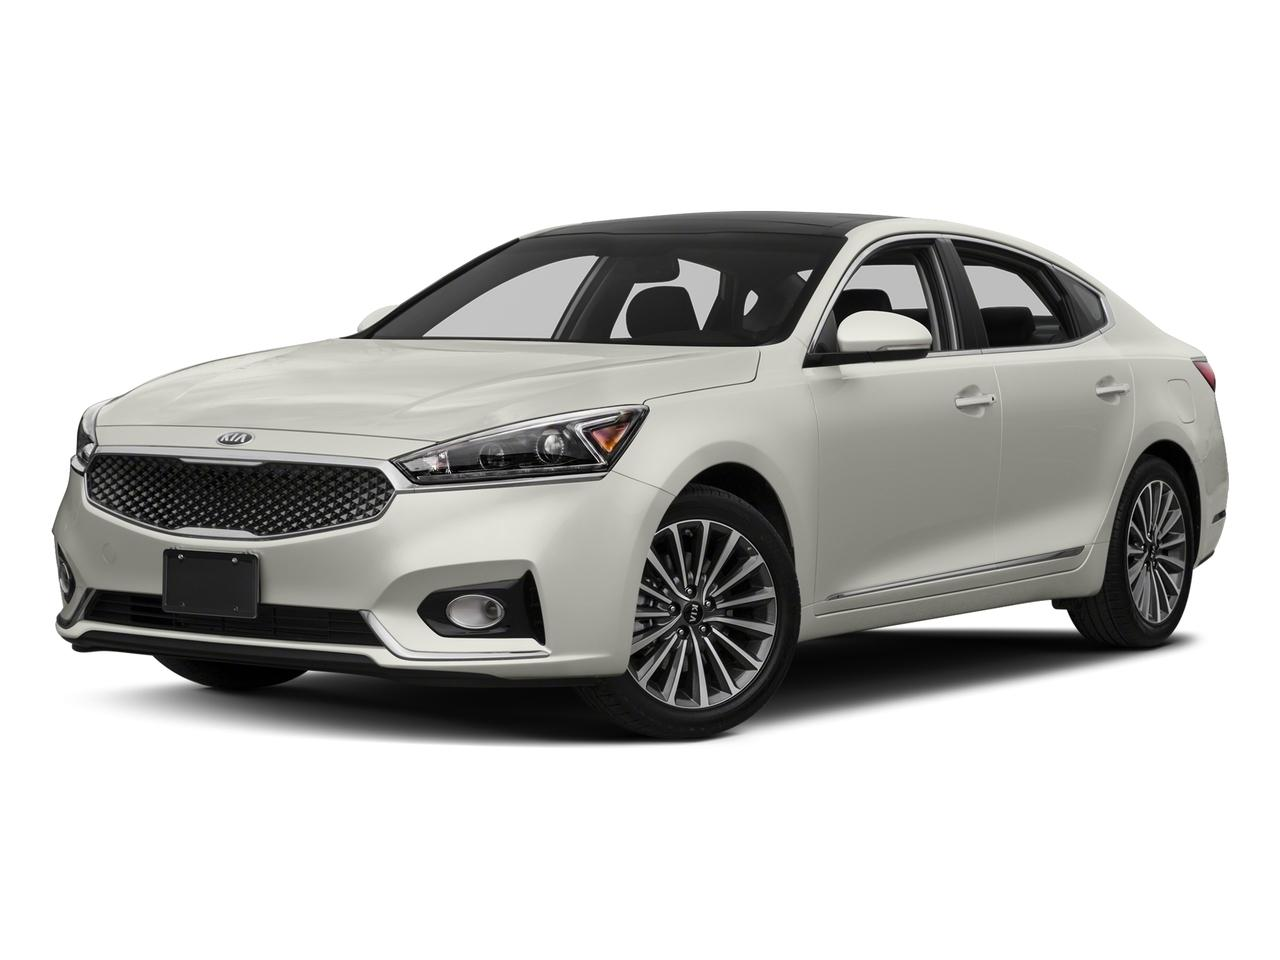 2017 Kia Cadenza Vehicle Photo in Sheffield, AL 35660